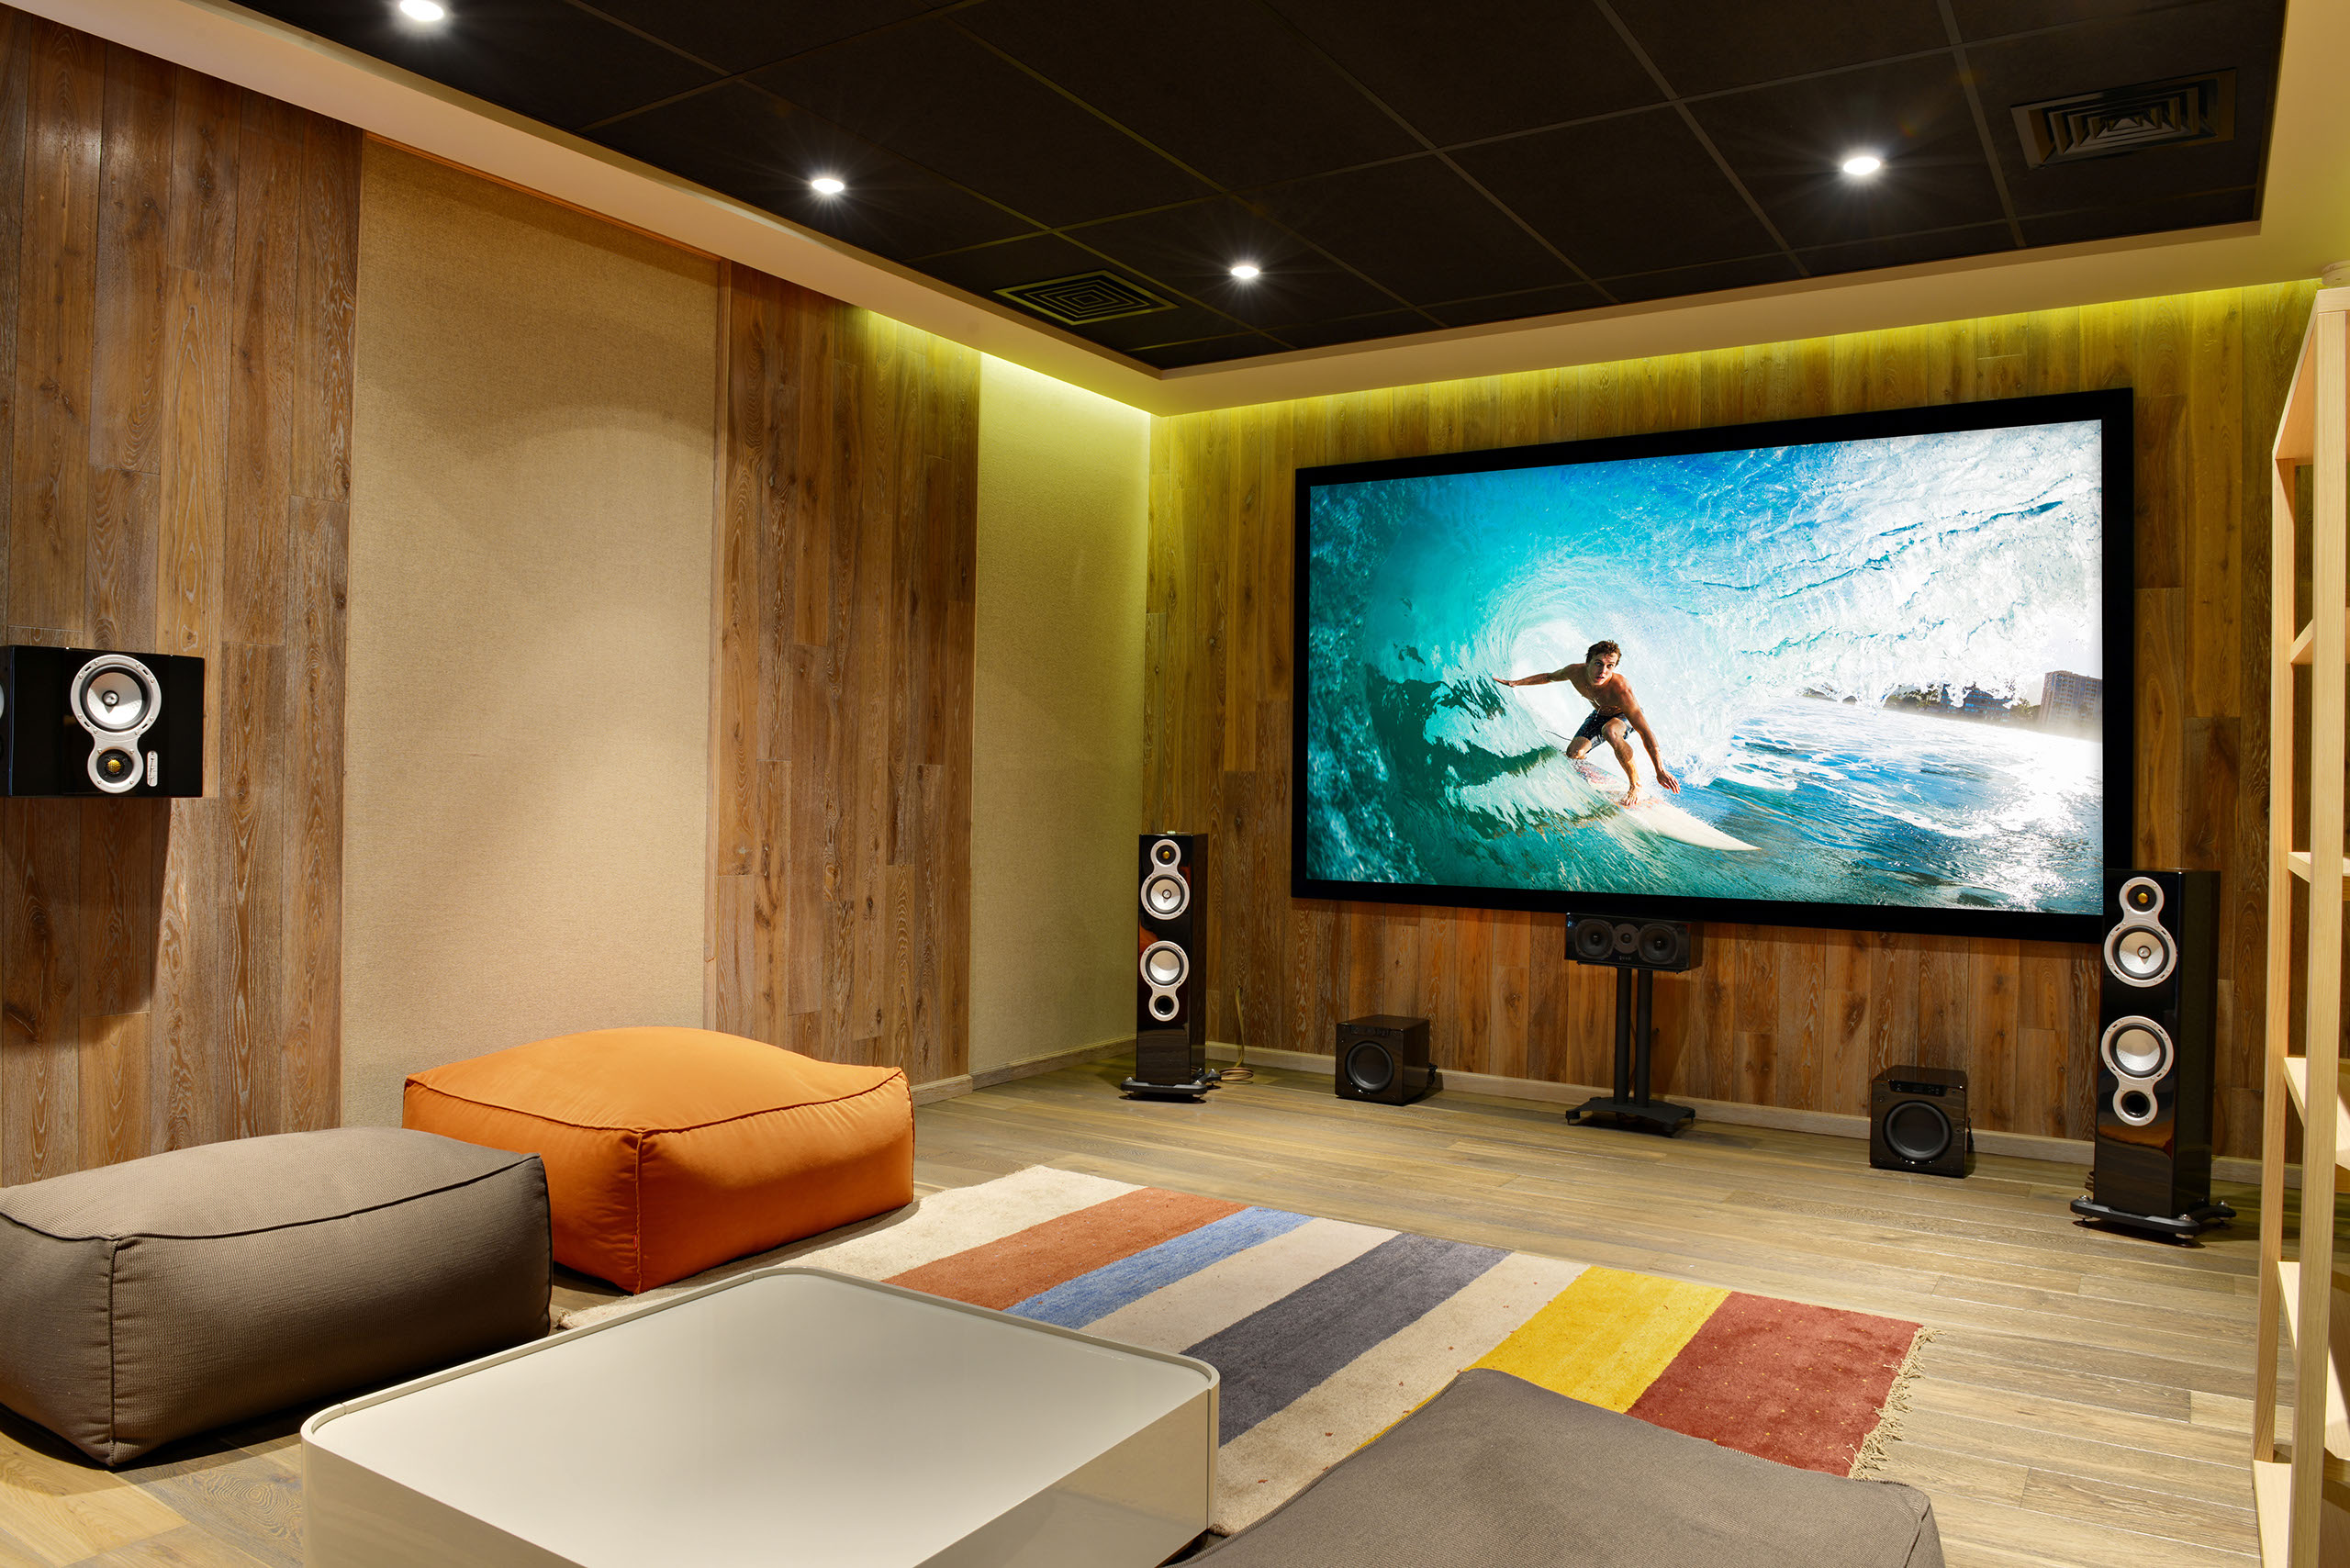 Technico Security Systems Llc Cctv Installation New York City How To Install Home Theater System